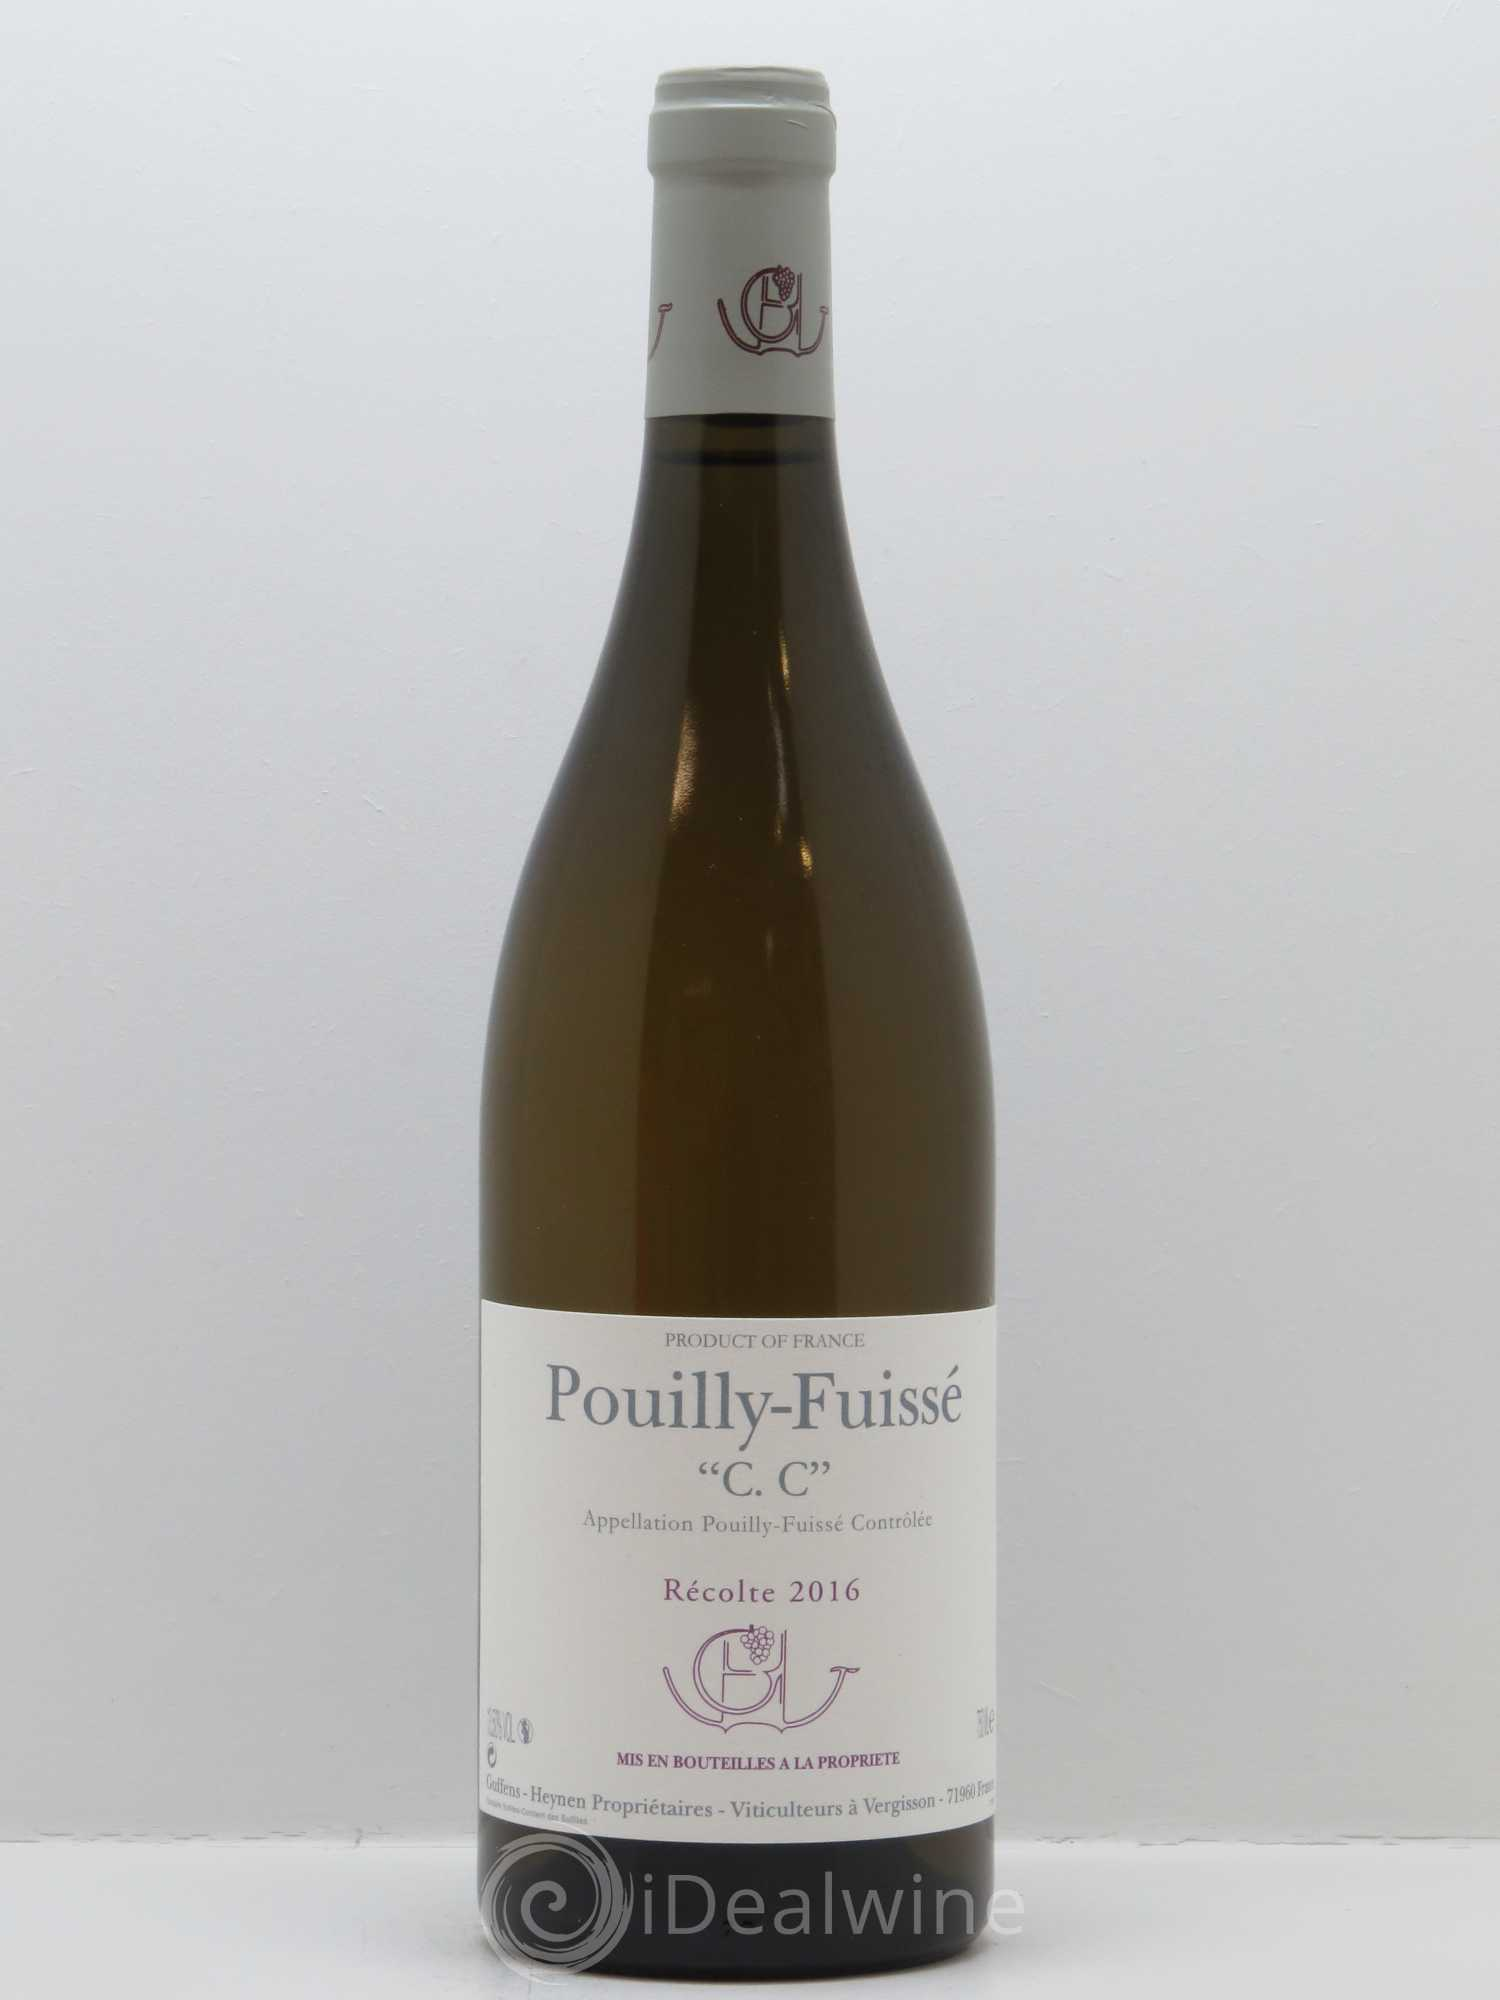 Pouilly-Fuissé C.C. Guffens-Heynen (Domaine)  2016 - Lot of 1 Bottle